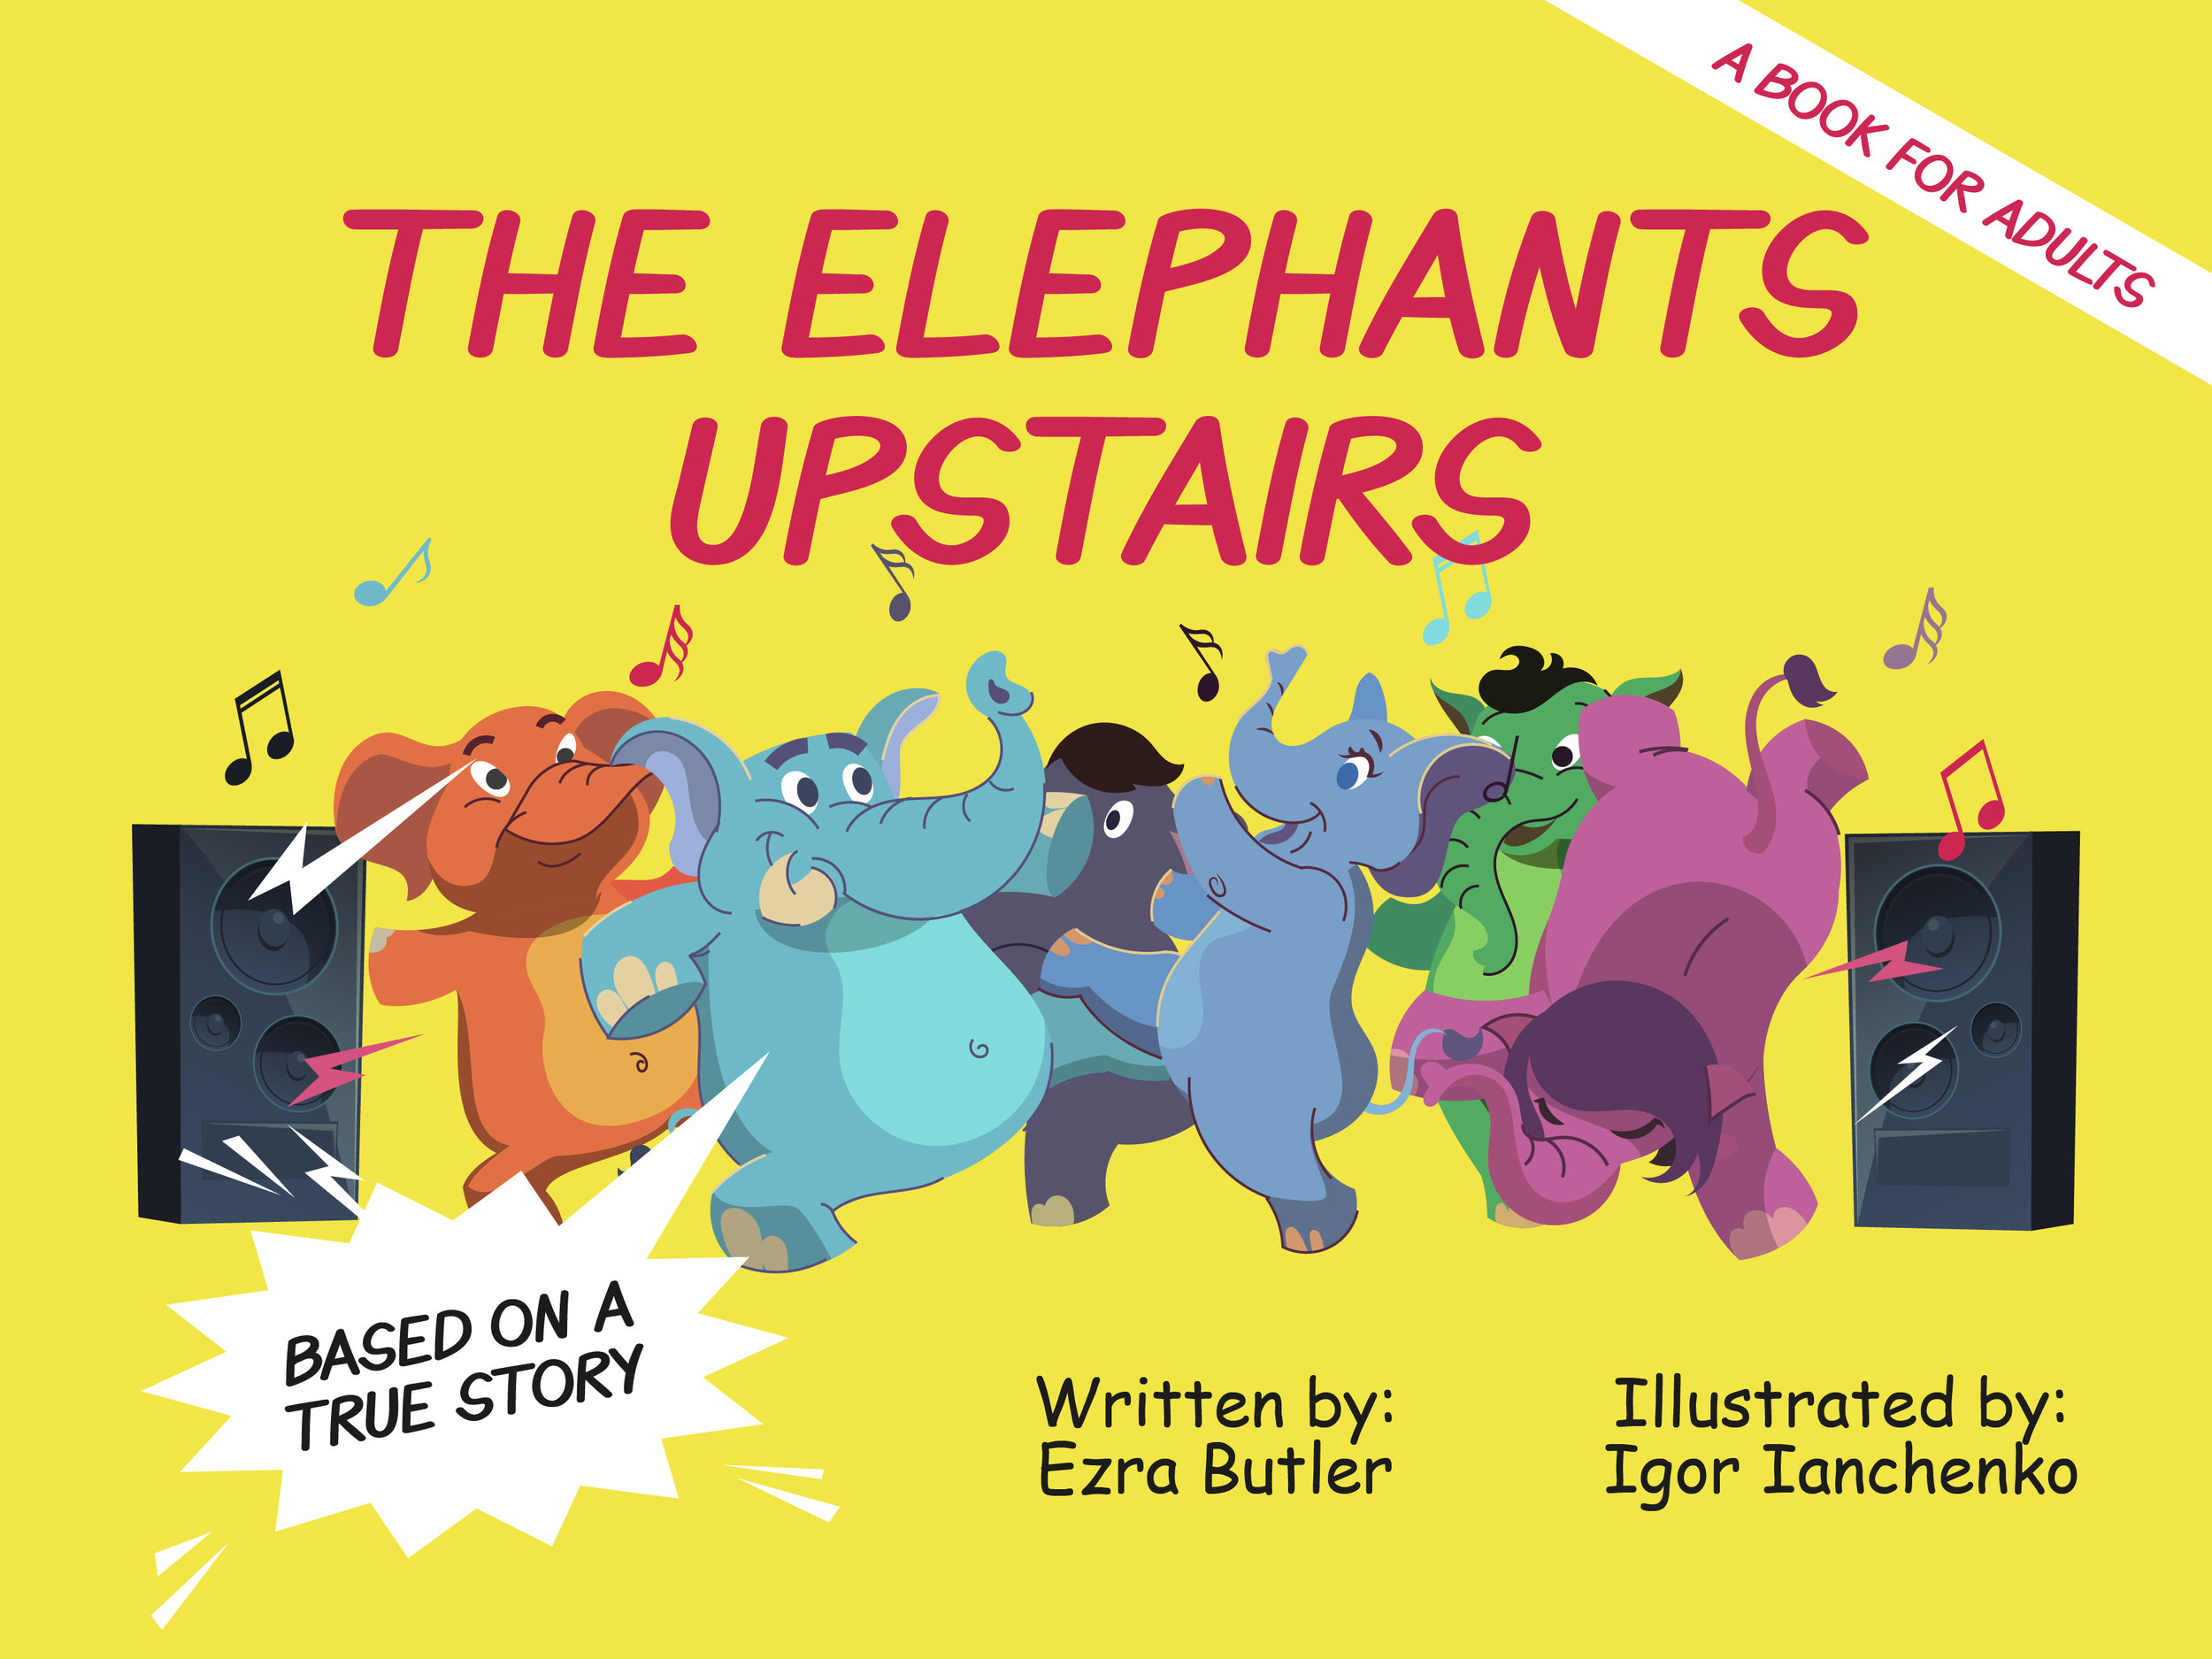 The Elephants Upstairs - What happens when a couple of elephants move into a 4th floor walkup in New York City? How does their downstairs neighbor cope? Not for children.